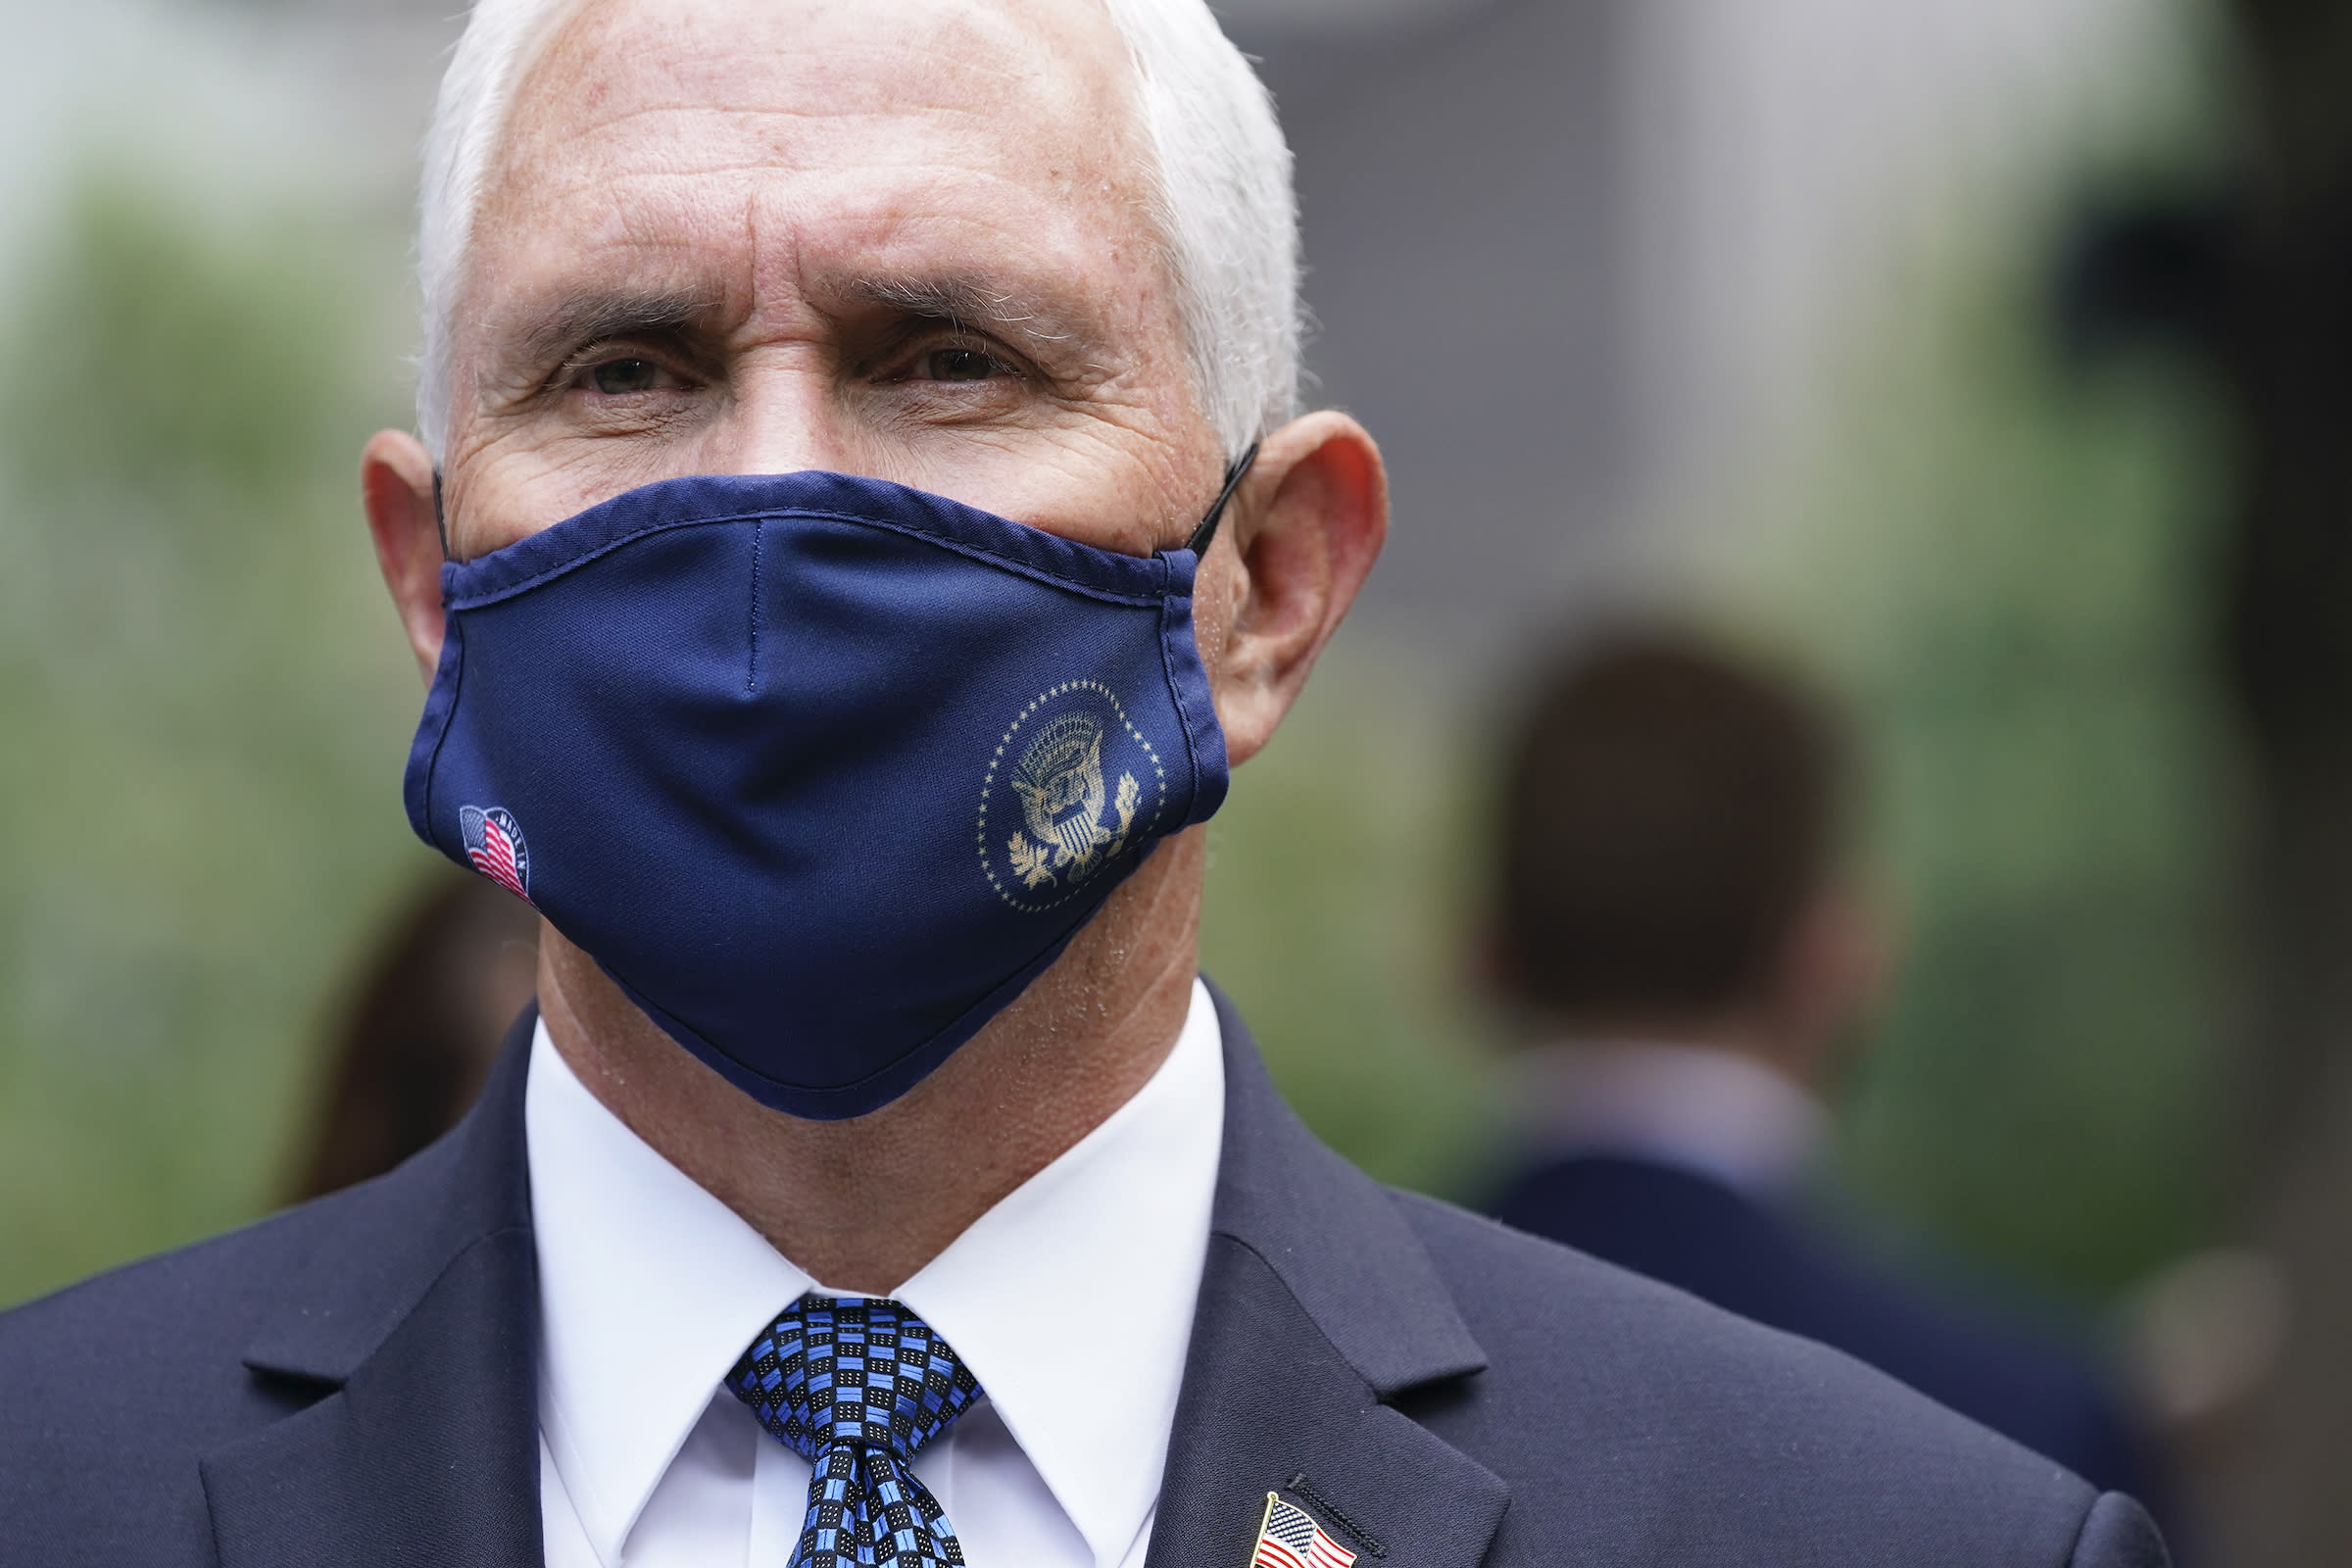 With Donald Trump Hospitalized With COVID-19, Mike Pence Steps Into the Spotlight